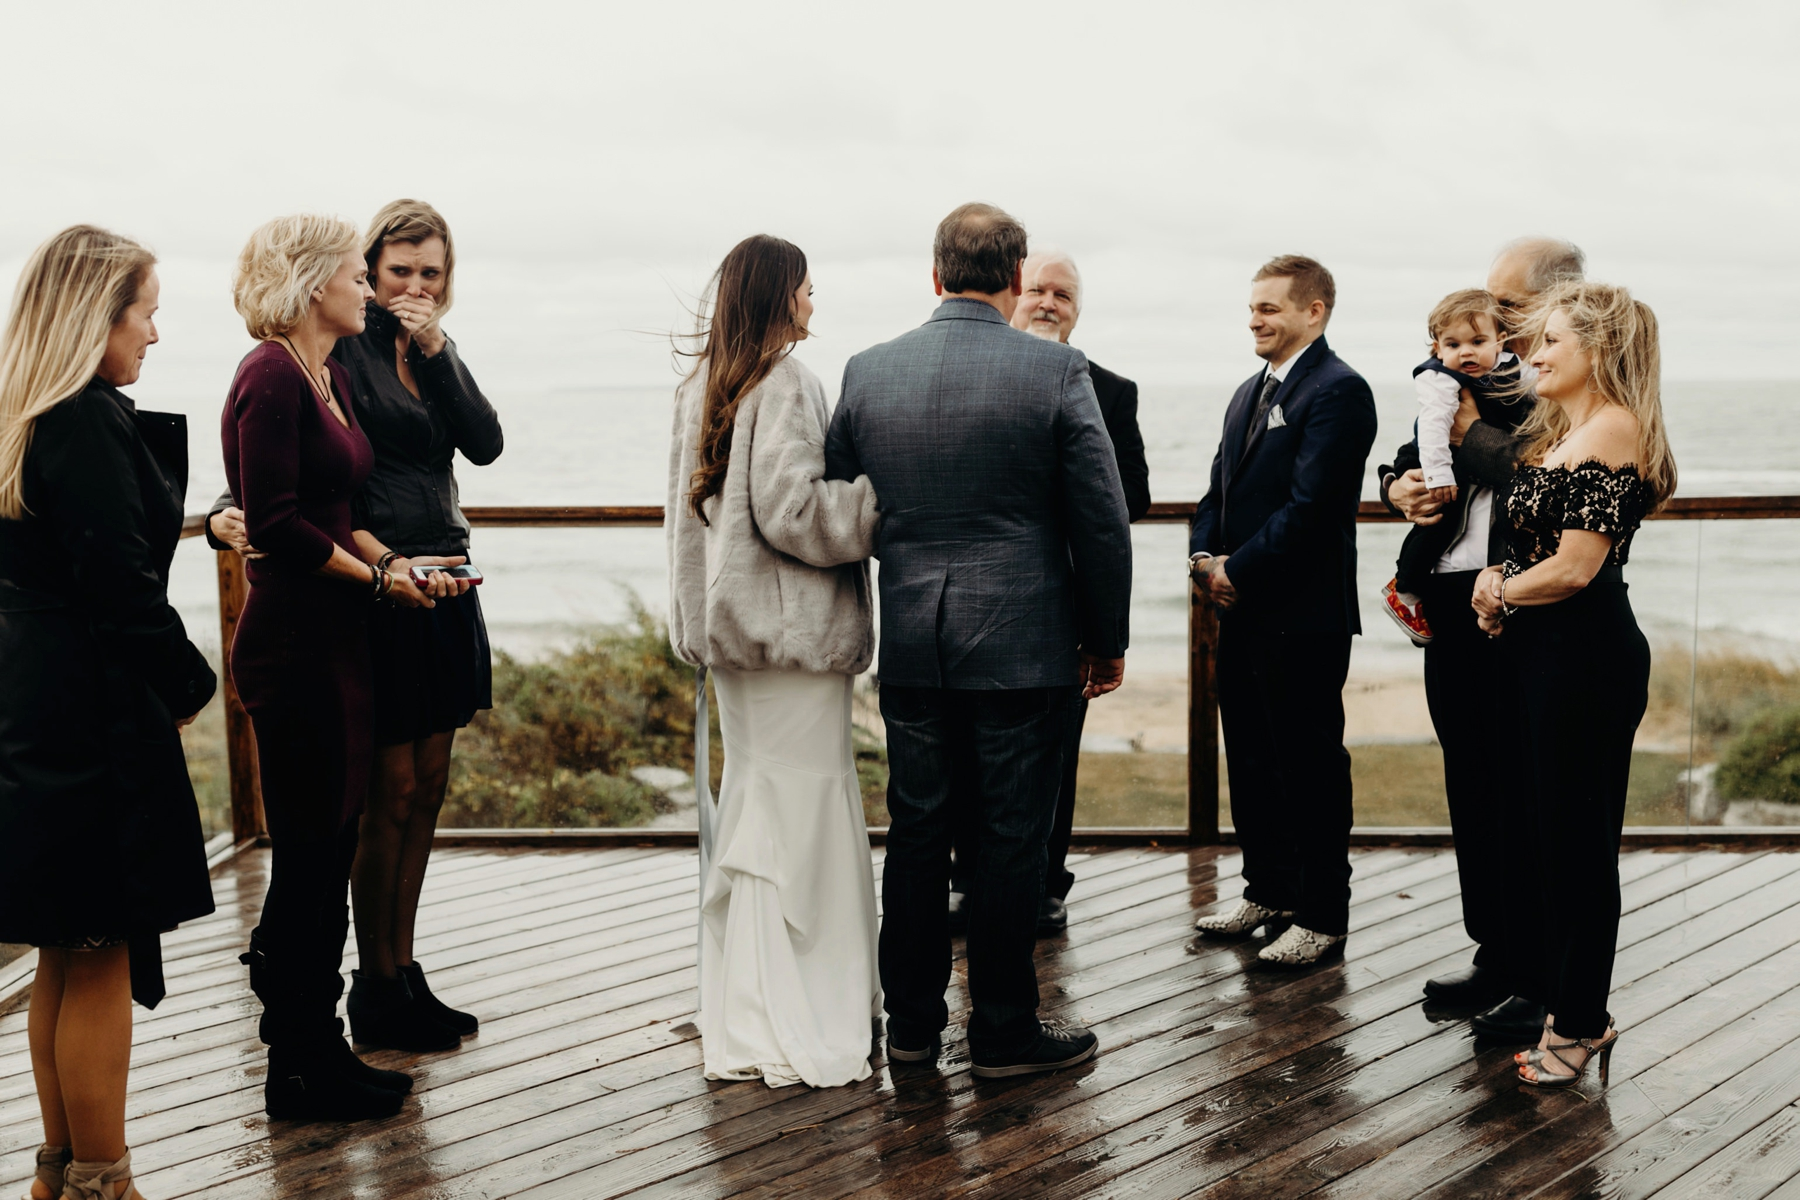 elopement-photographer-ryan-jimmy34.JPG